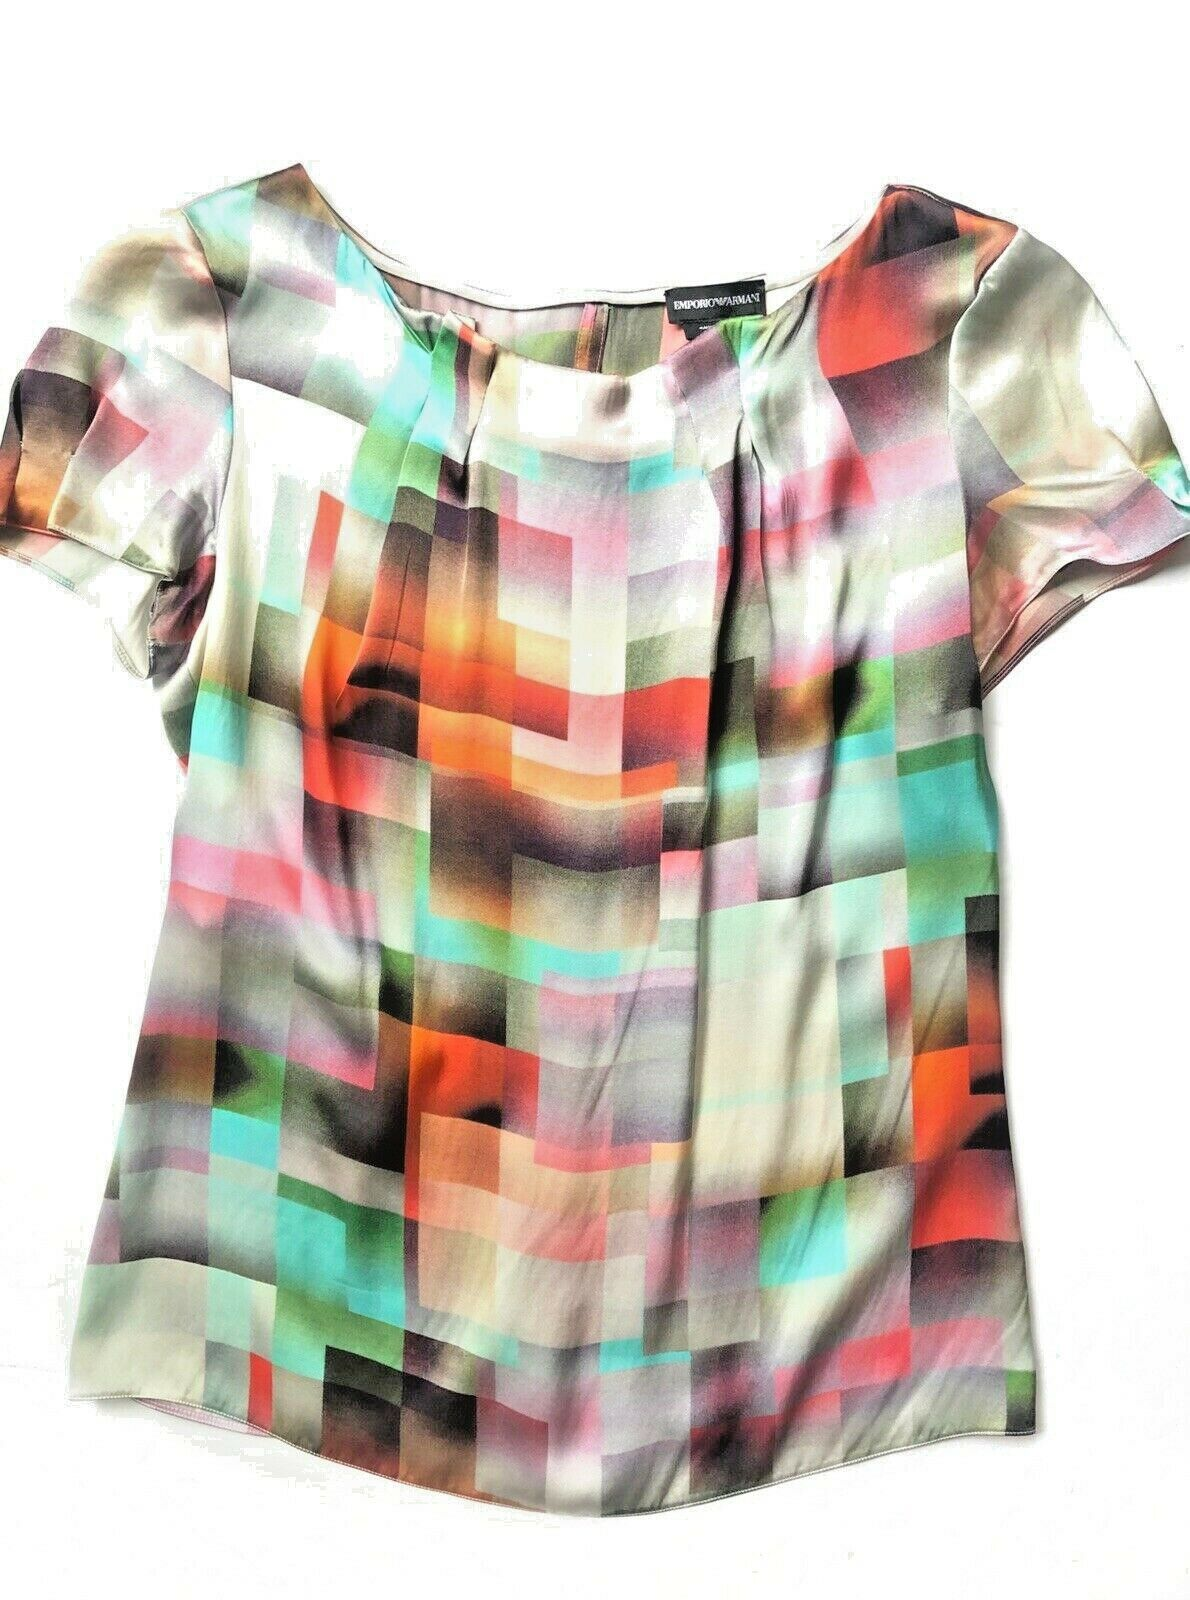 Armani Silk Short Sleeve Geometric Multi Farbe Blouse Größe 40 Small Bateau Neck